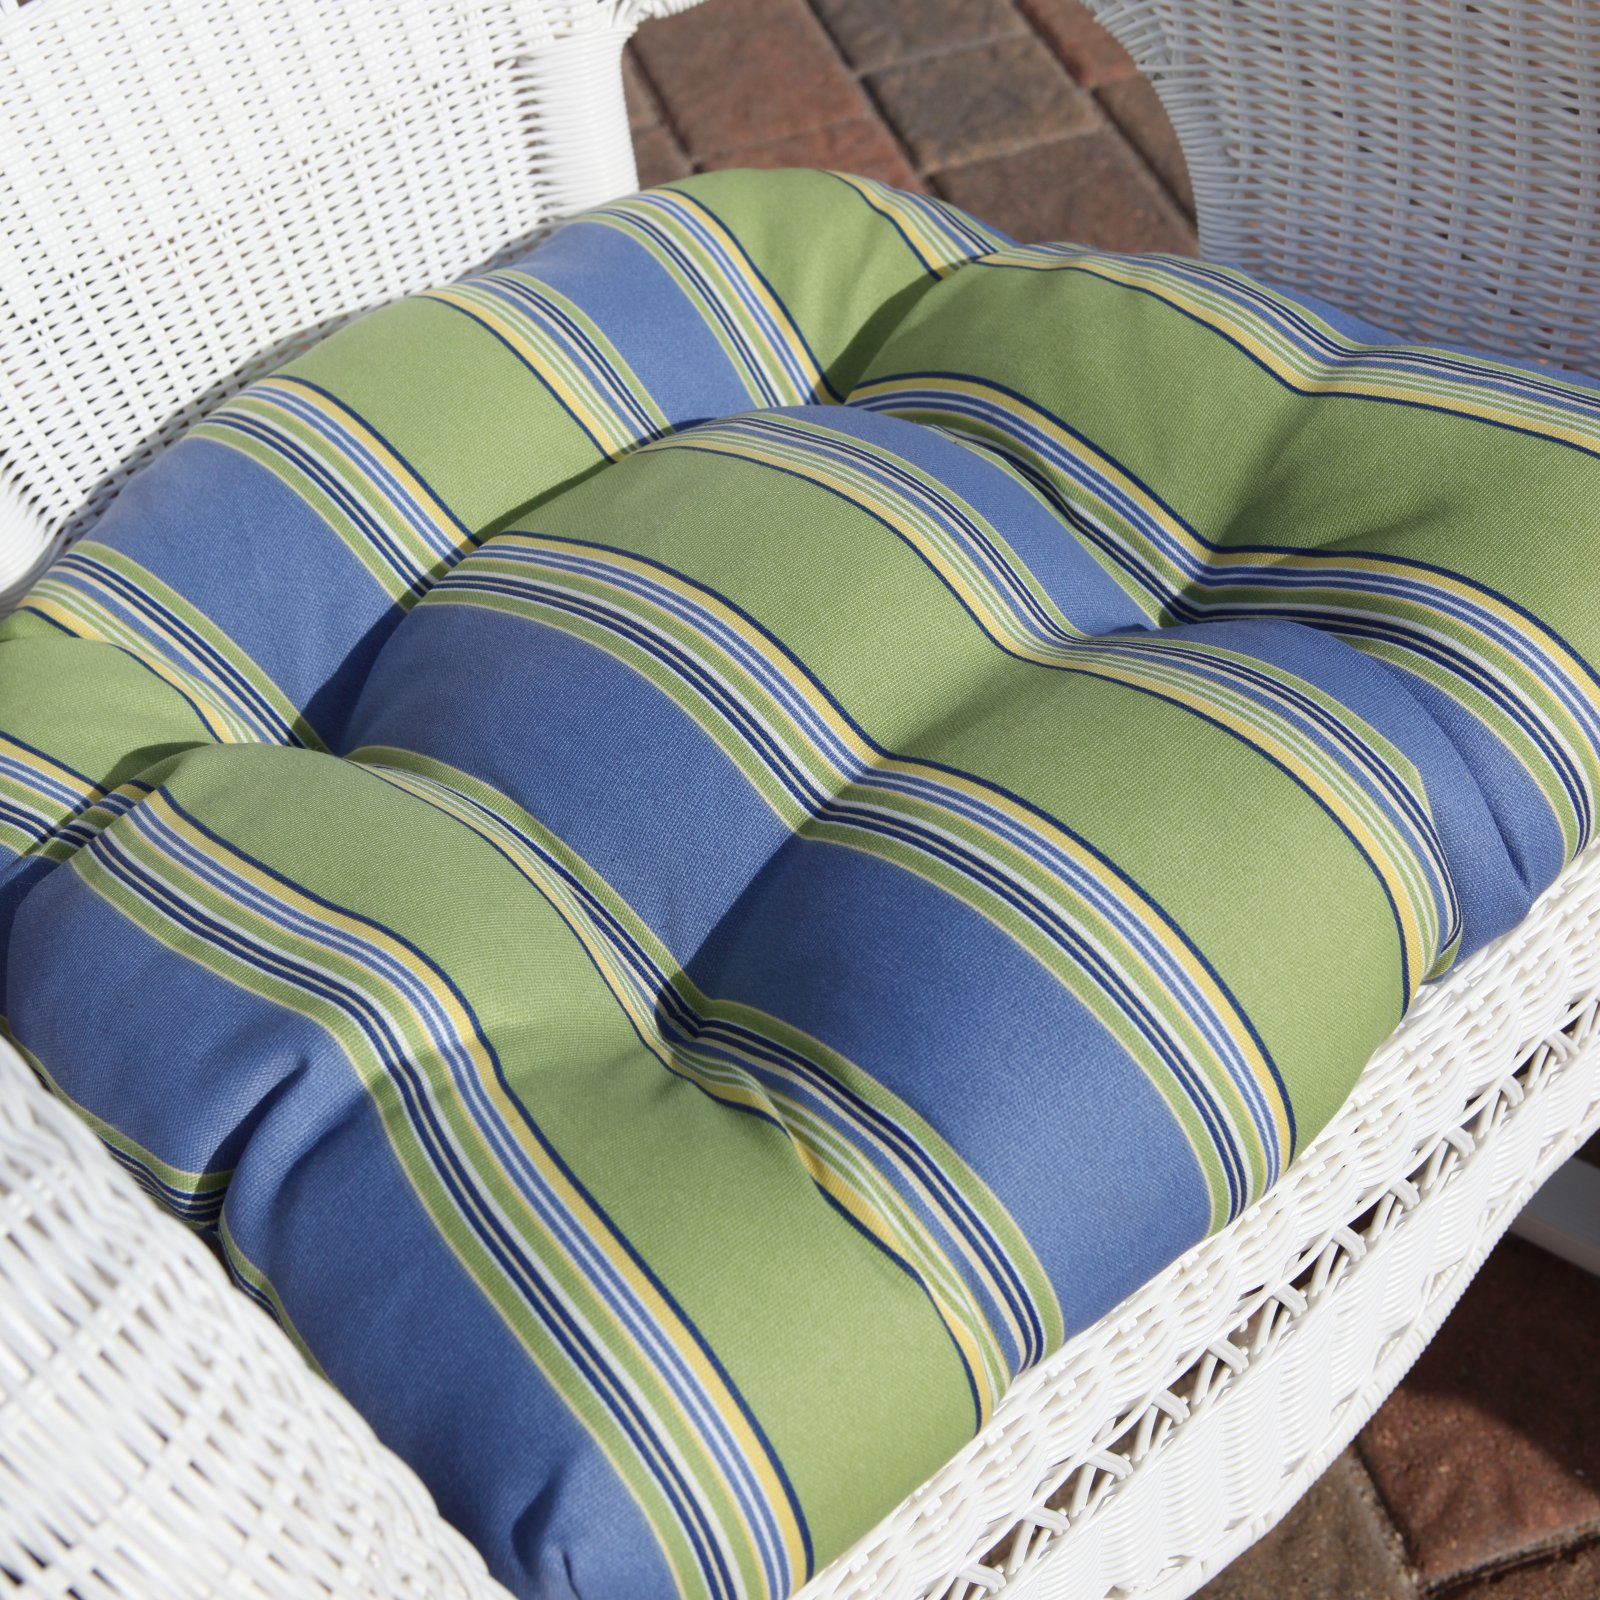 Sahara 17 x 19 in. Outdoor Wicker Chair Cushion